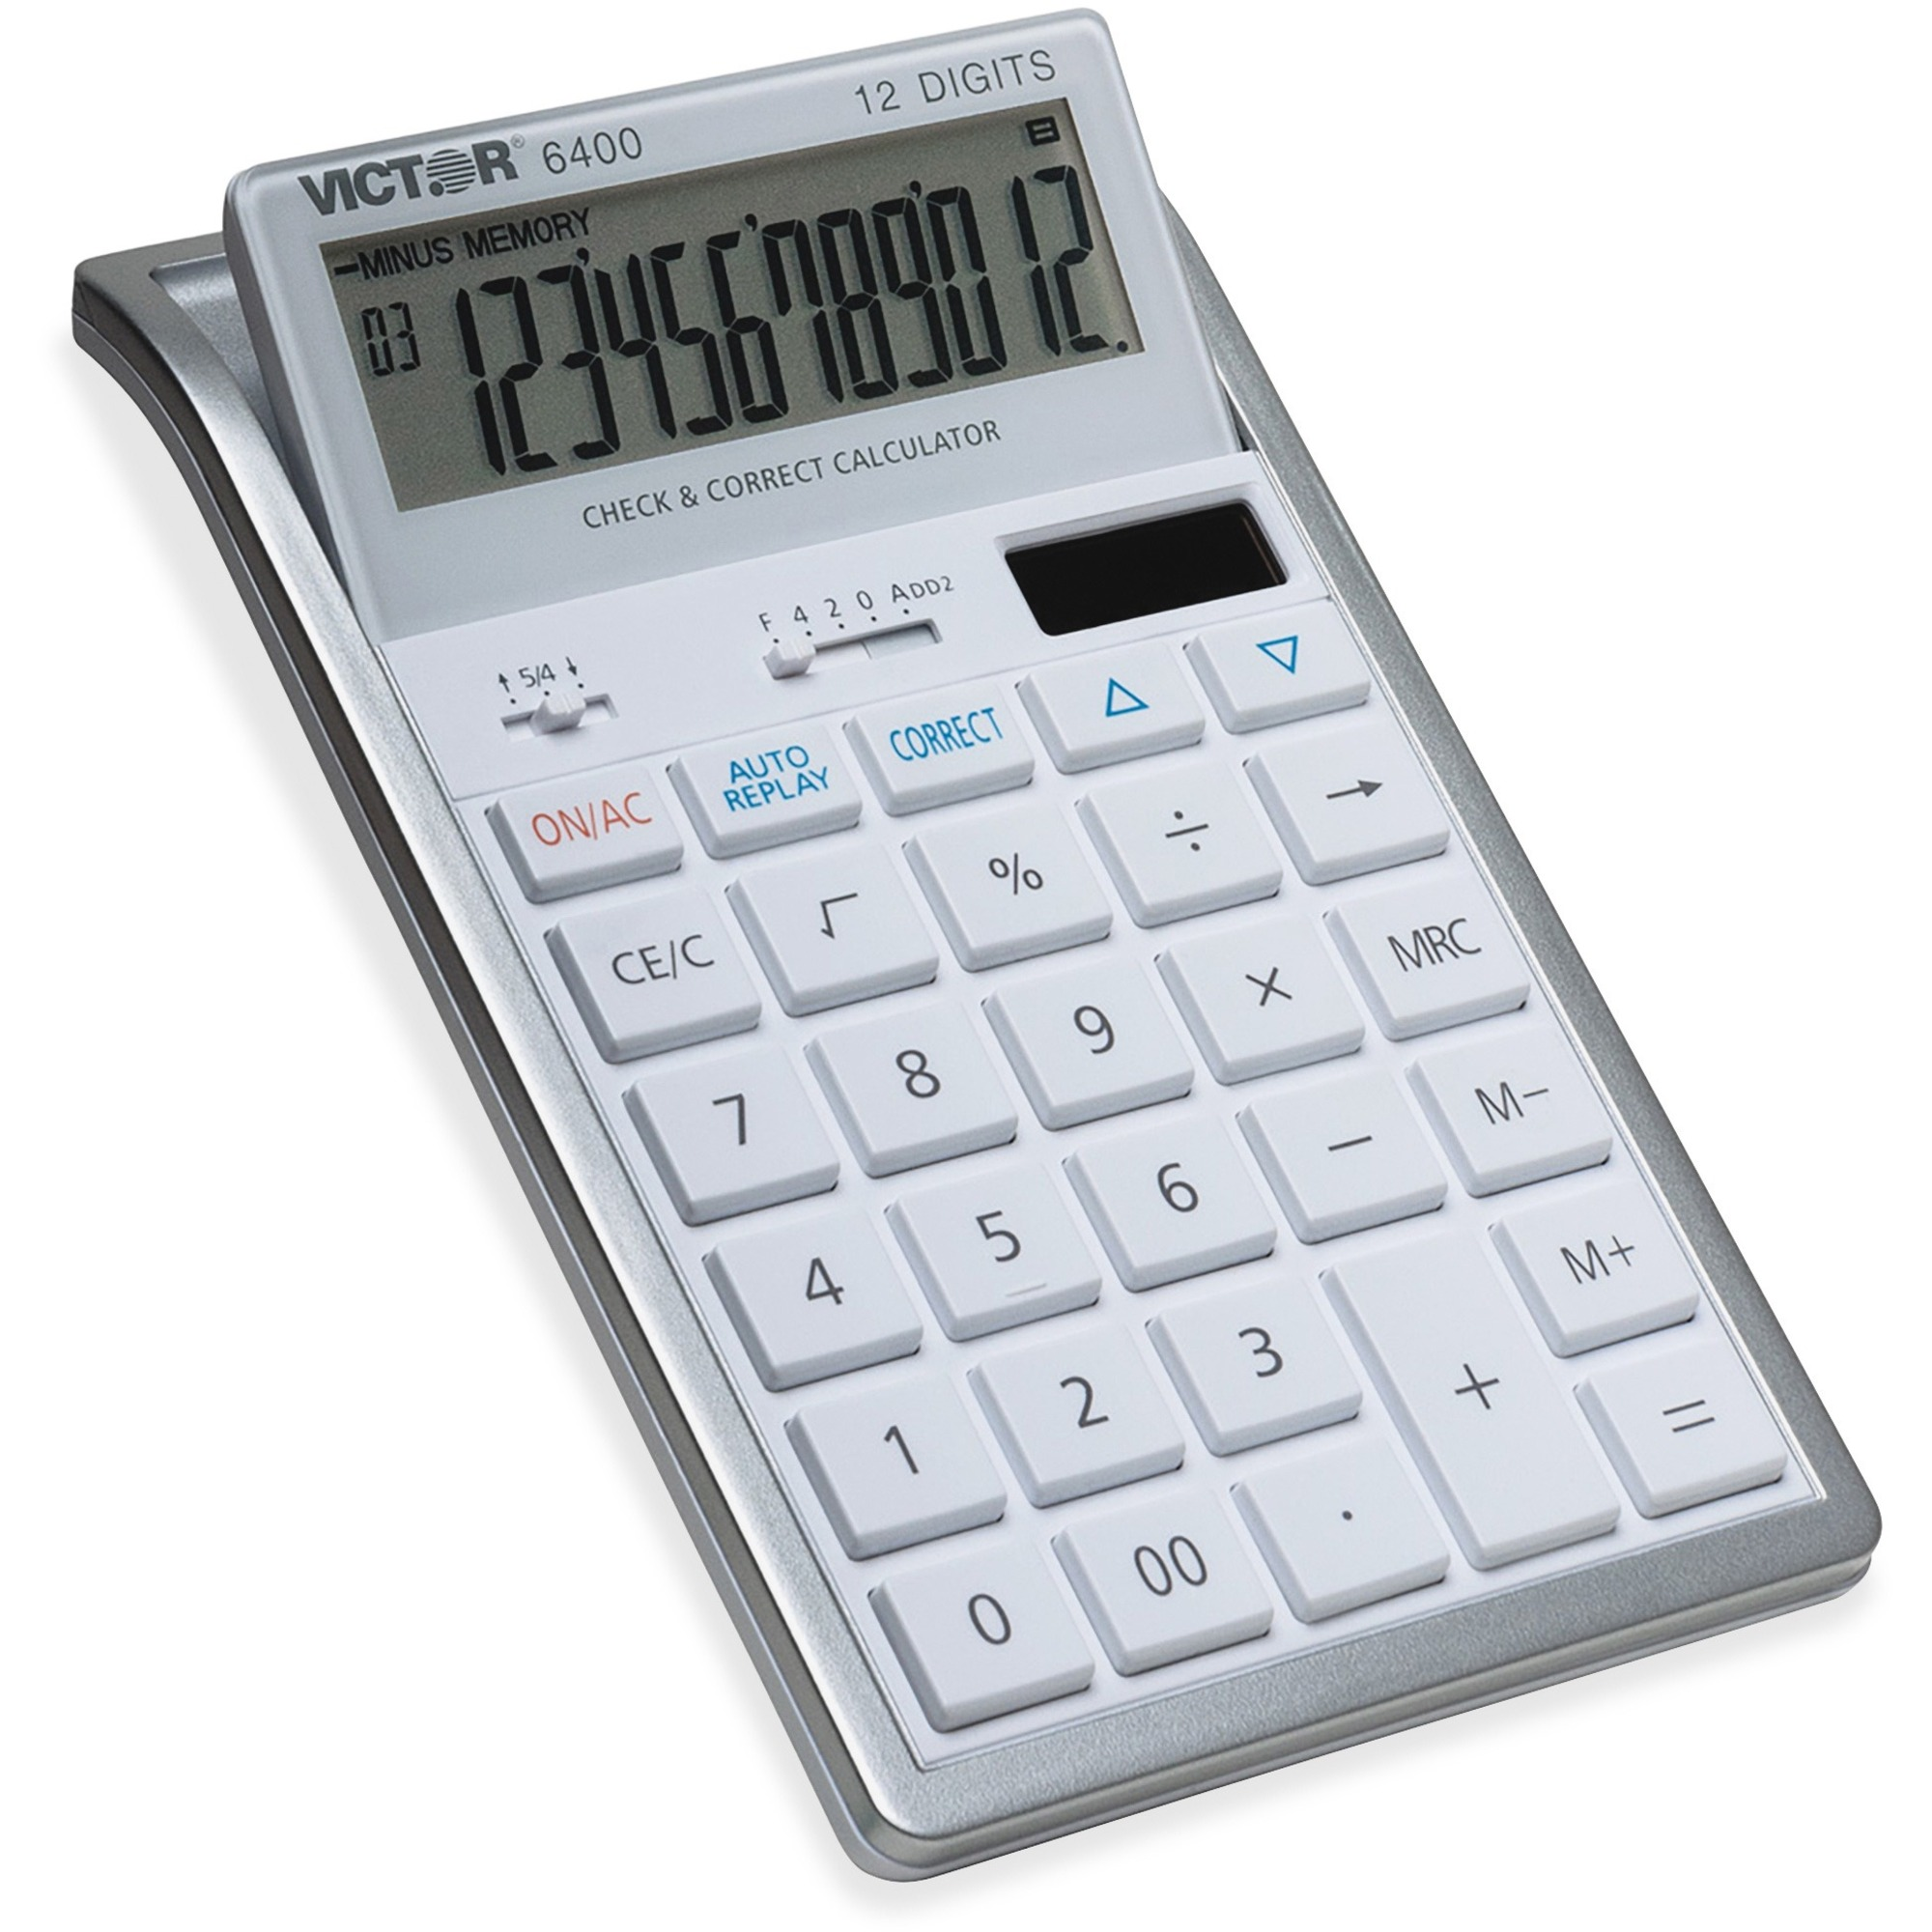 Victor 12 Digit Check And Correct Desk Calculator   Large Display, Tilt  Display, 3 Key Memory, Automatic Power Down, Dual Power, Battery Backup, ...